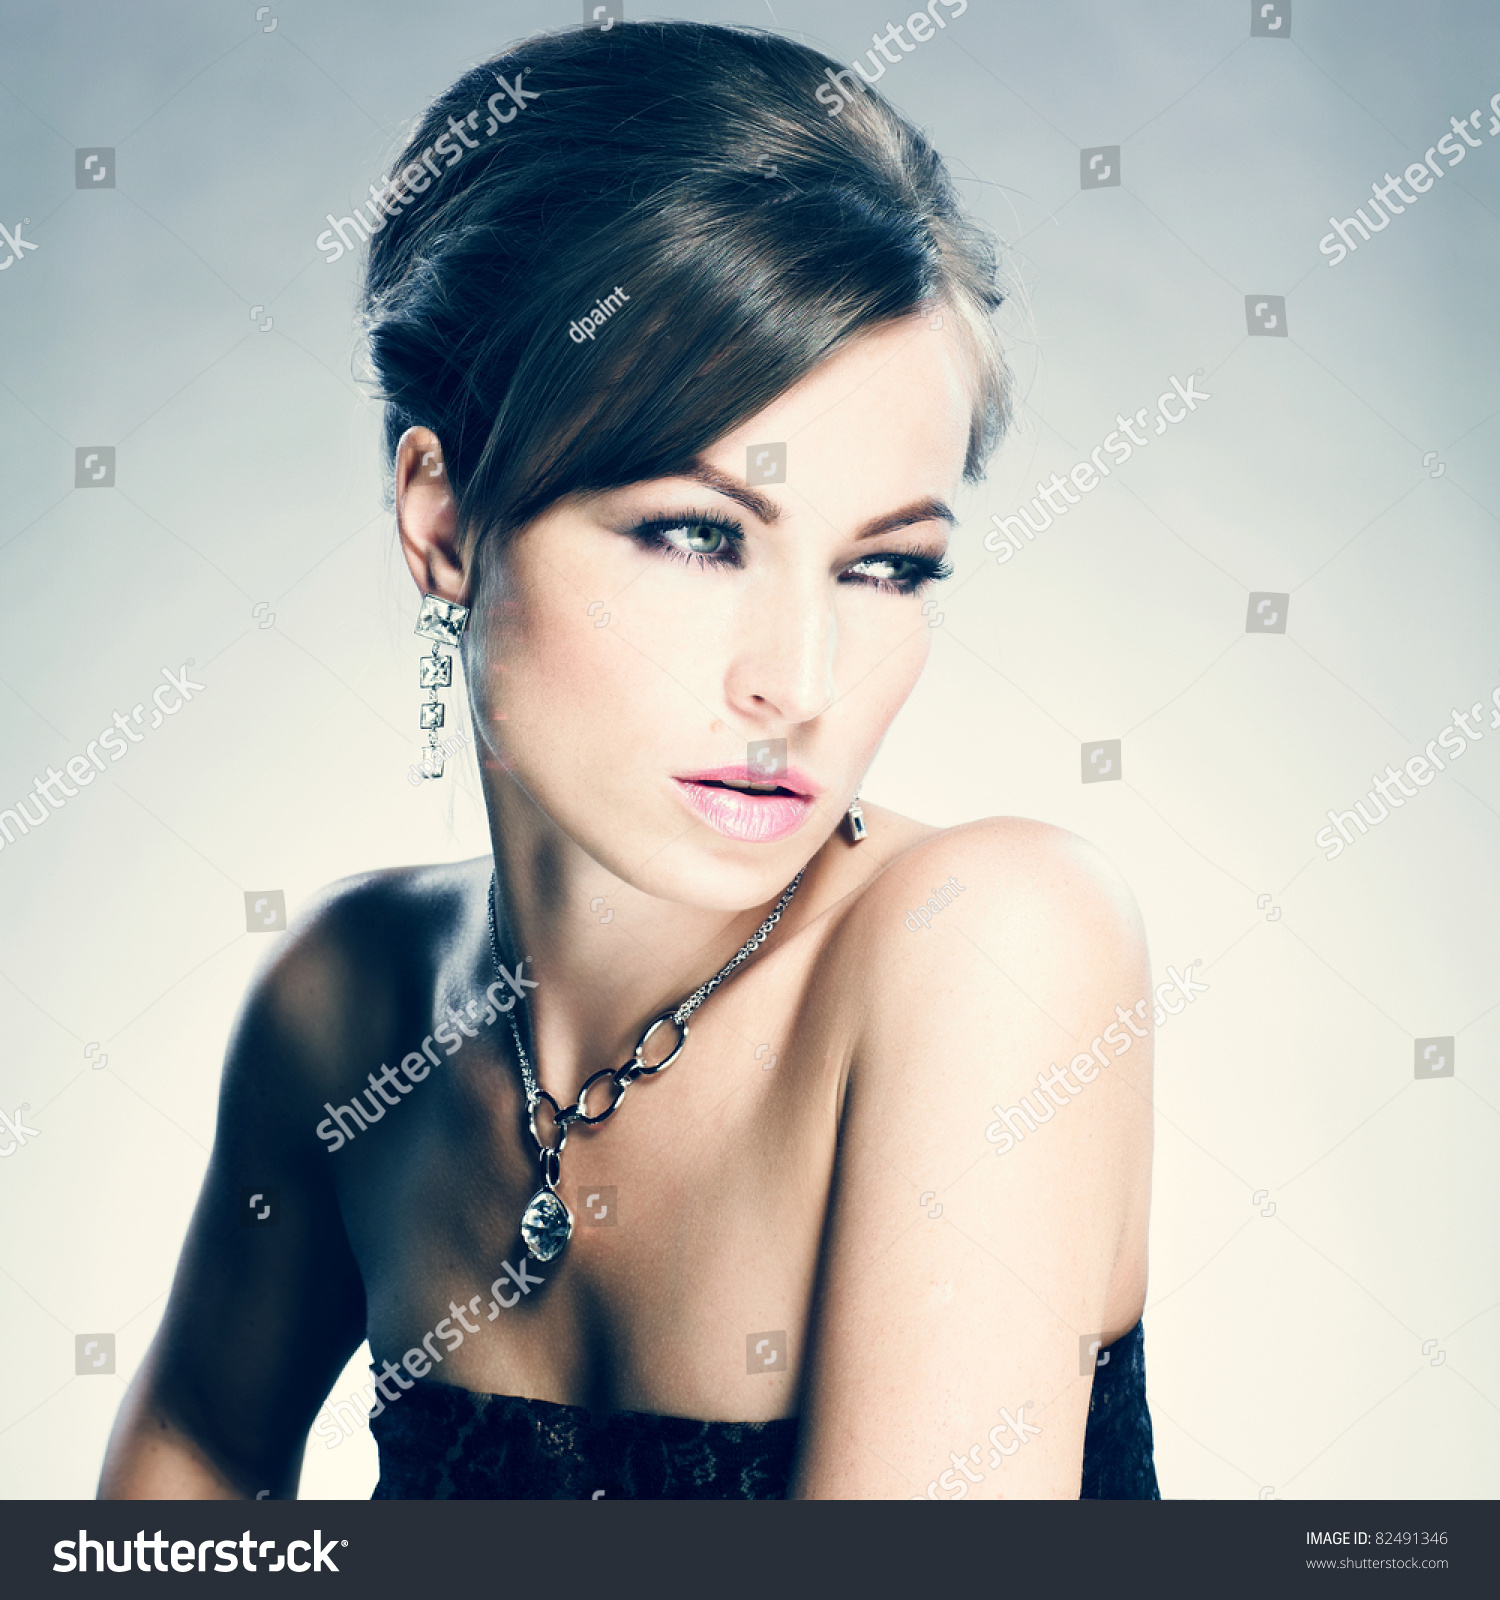 Beautiful Woman Evening Makeup Jewelry Beauty Stock Photo